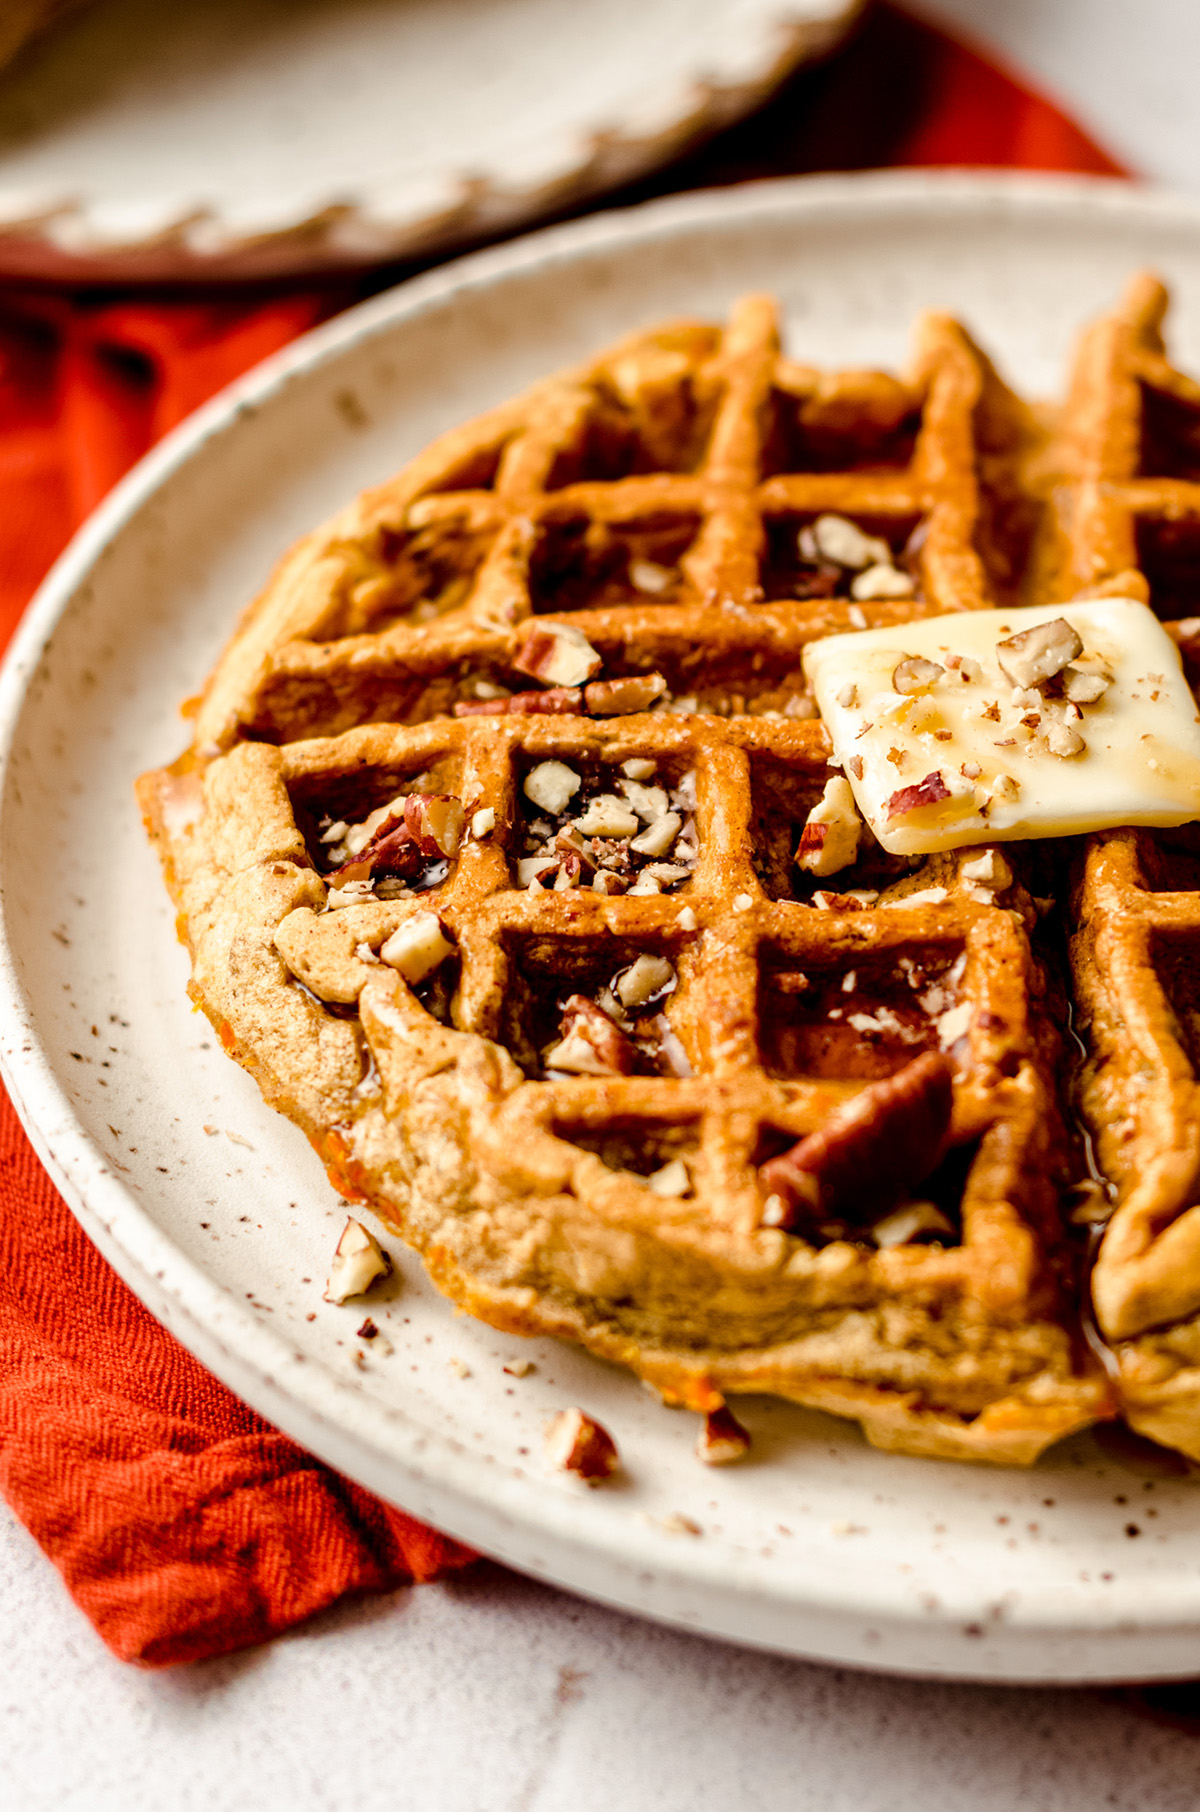 carrot cake waffle with a pat of butter and syrup on it